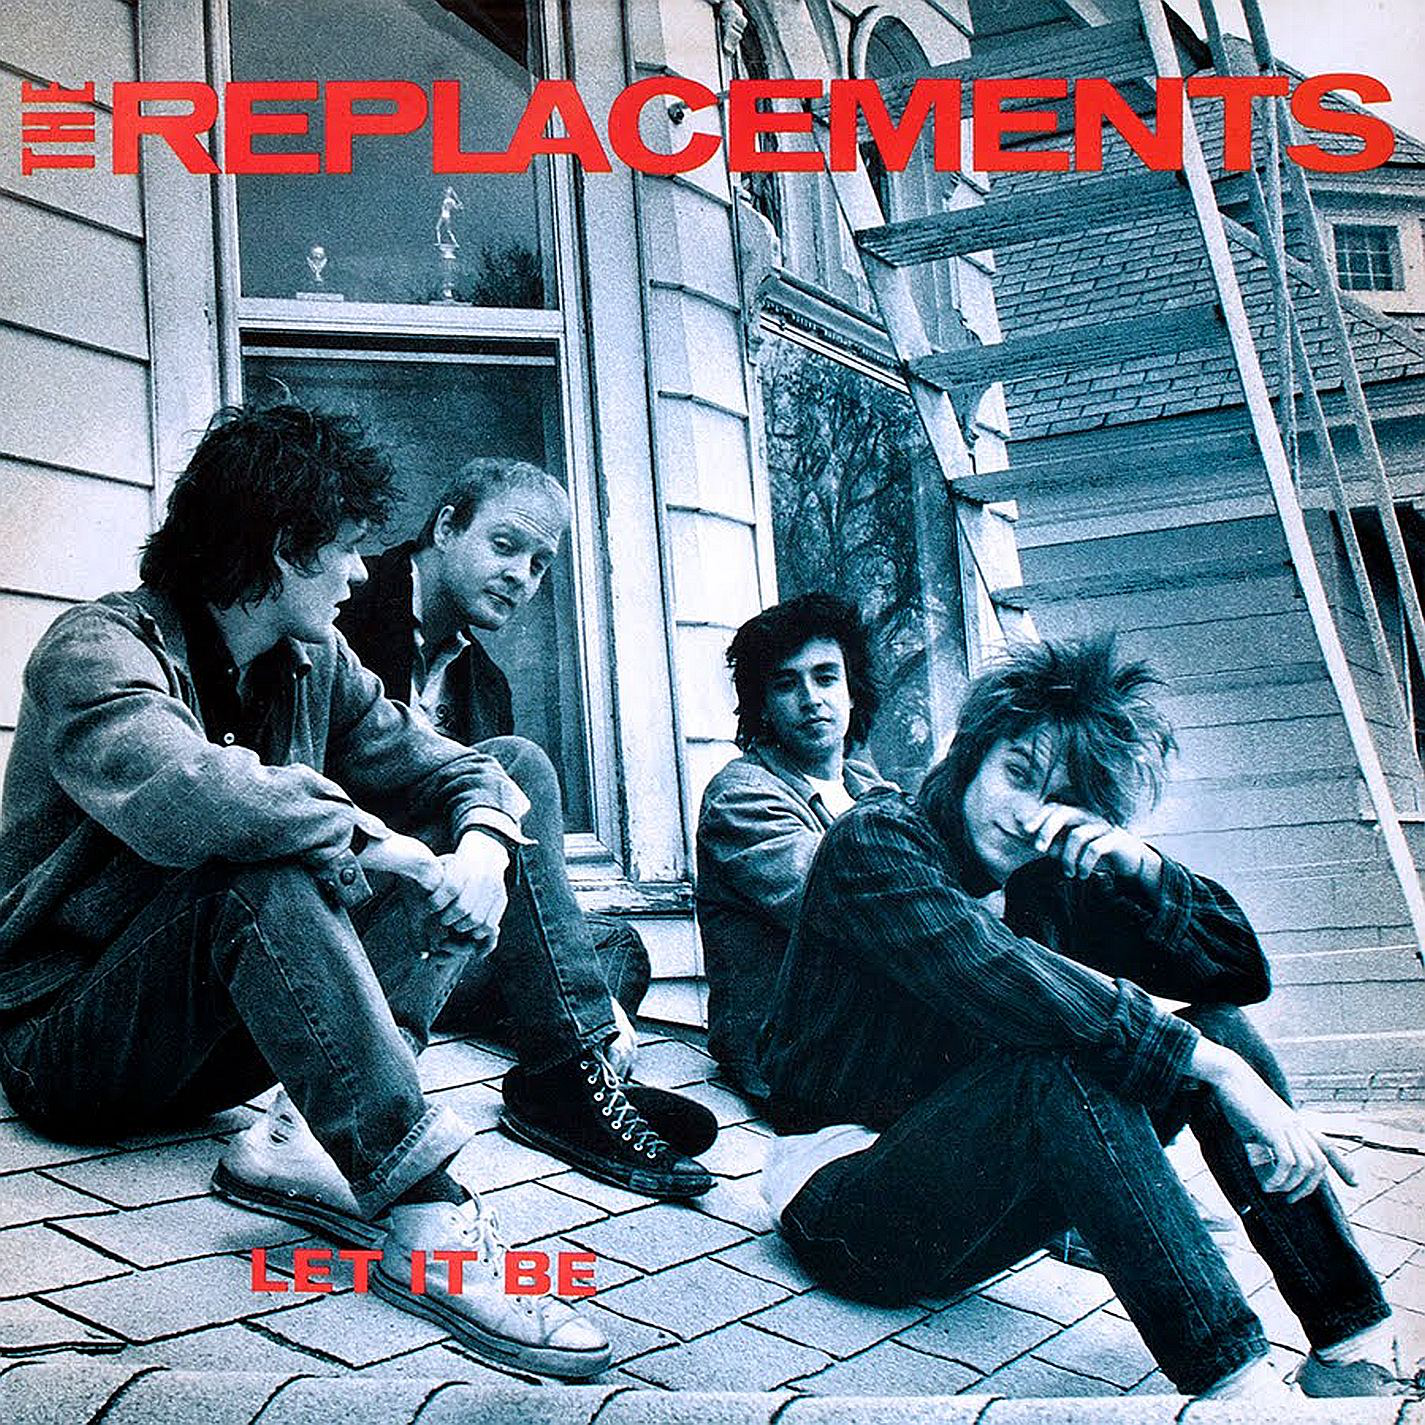 Shawn Brown's The Screaming Life: The Replacements Live In San Francisco